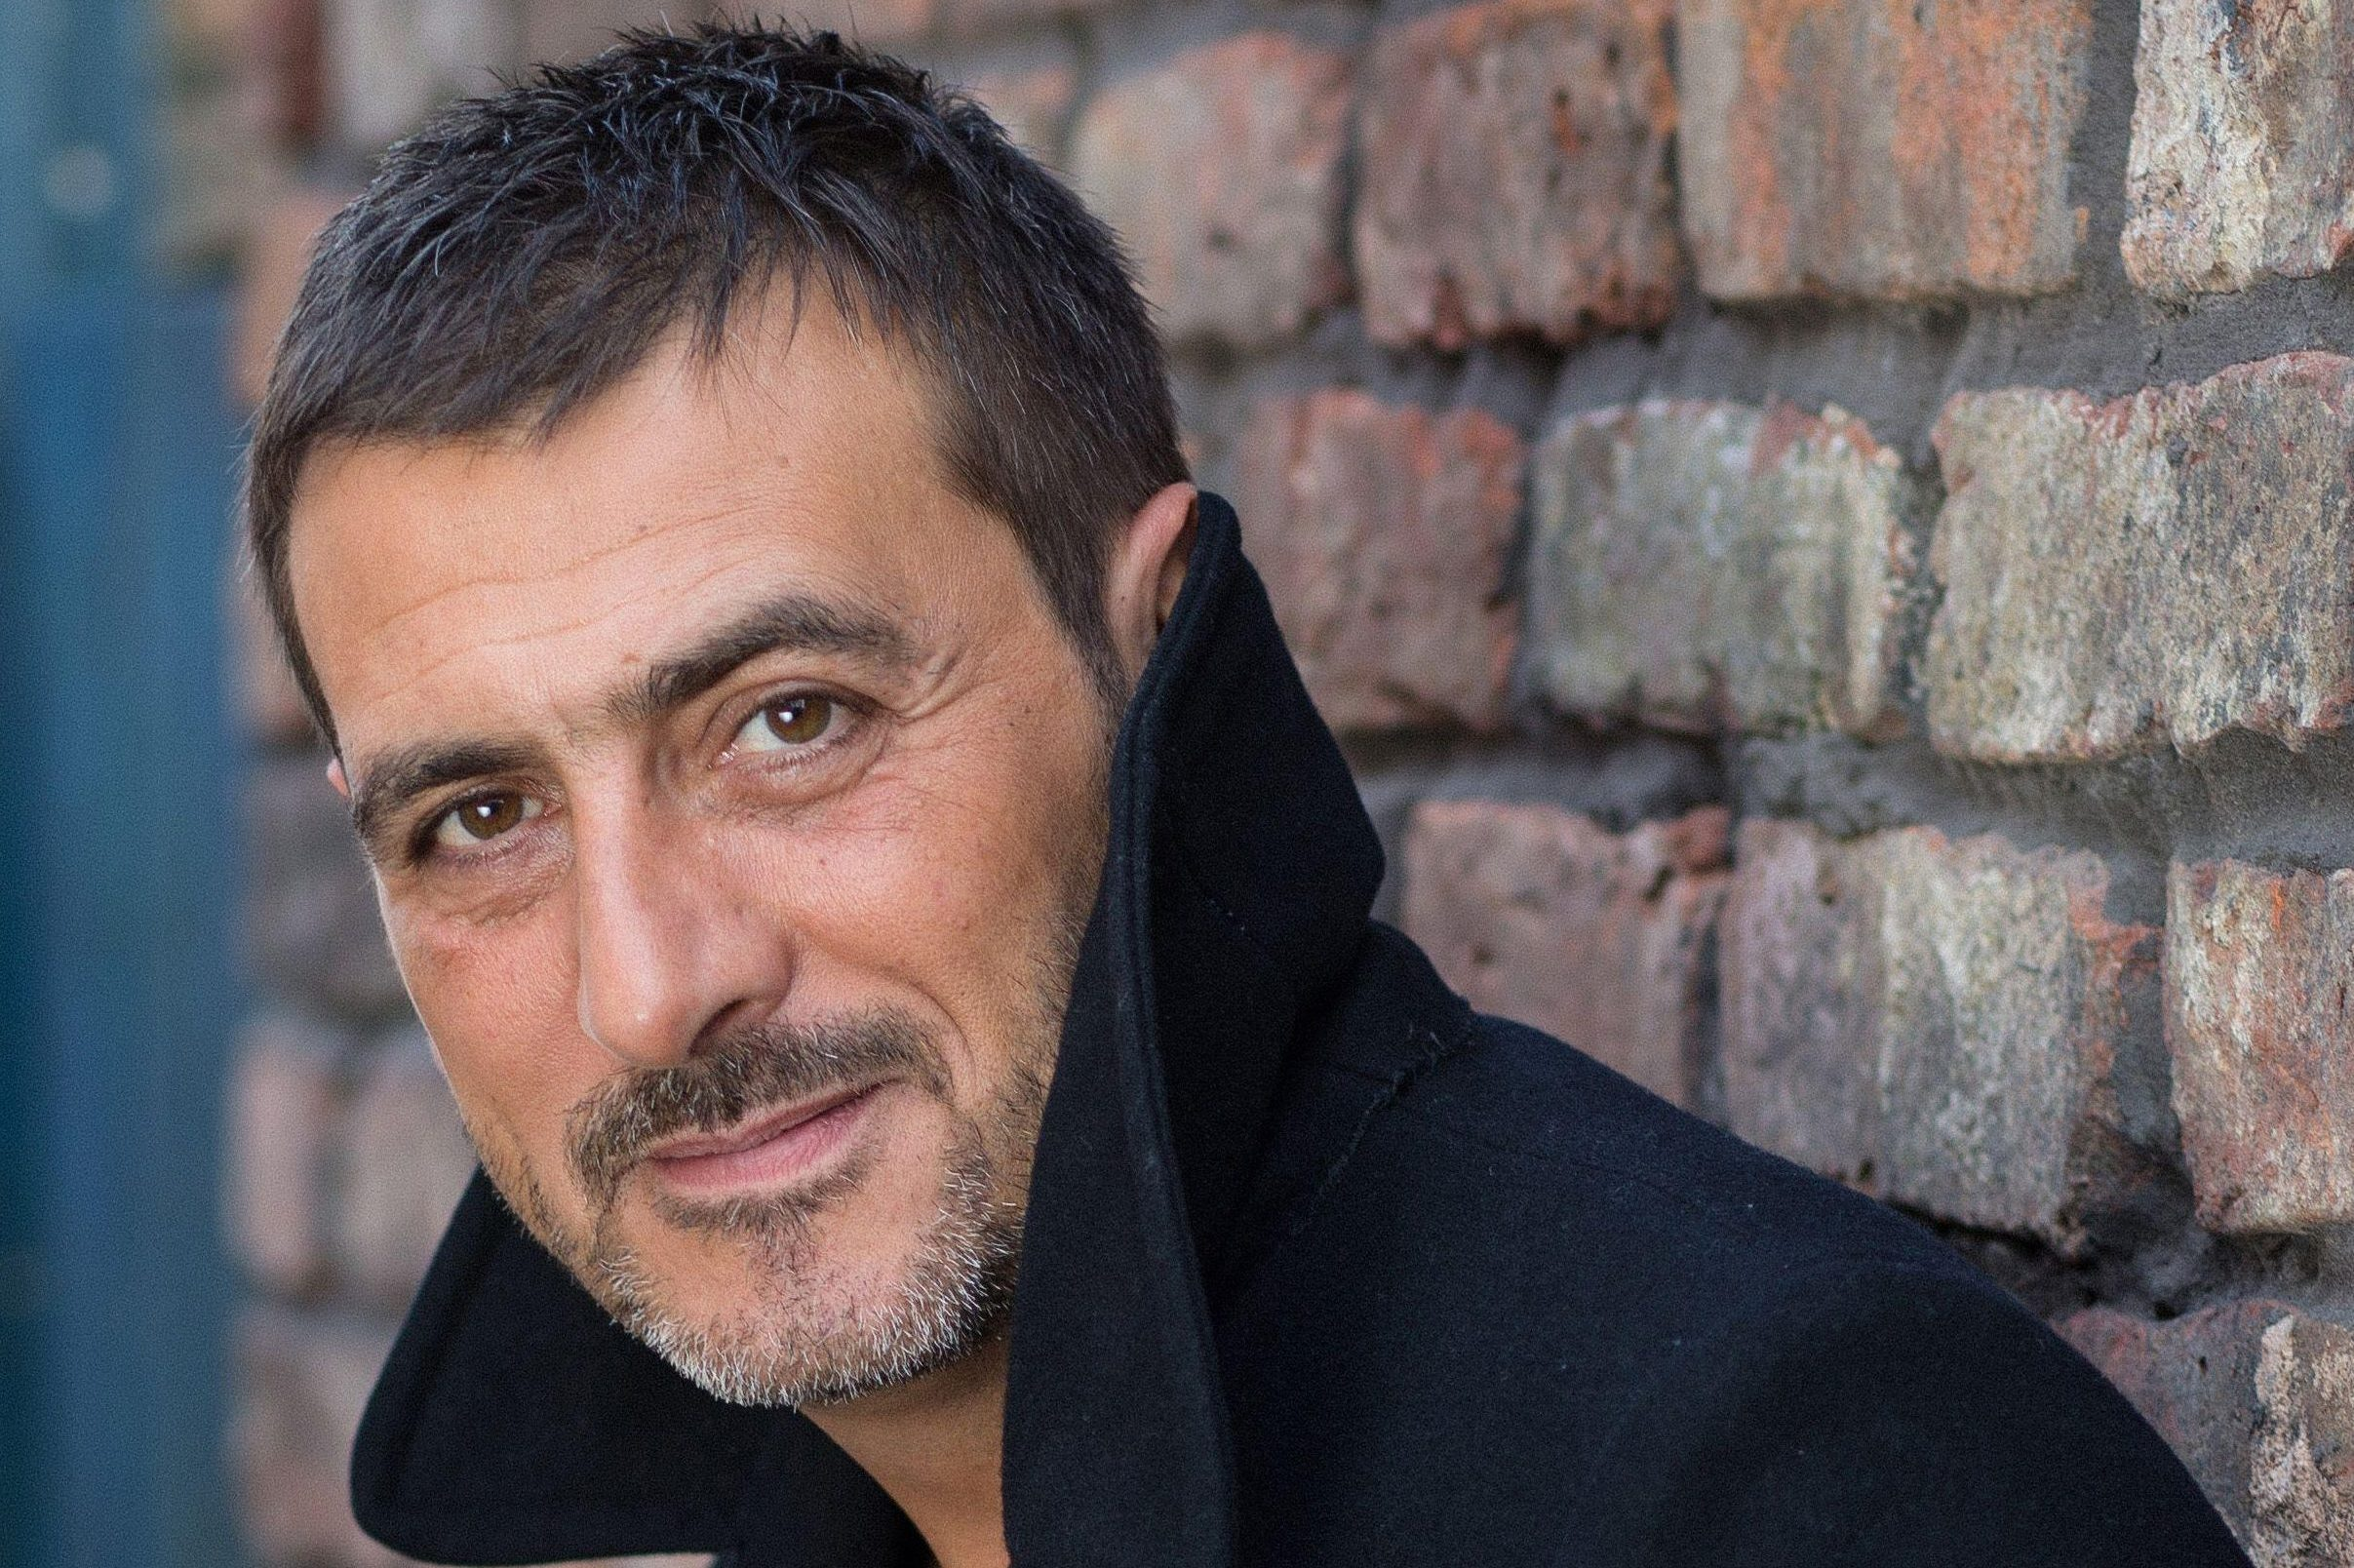 Coronation Street's Peter Barlow forced to choose between Carla Connor and his son Simon in heartbreaking plot which will tear his family apart